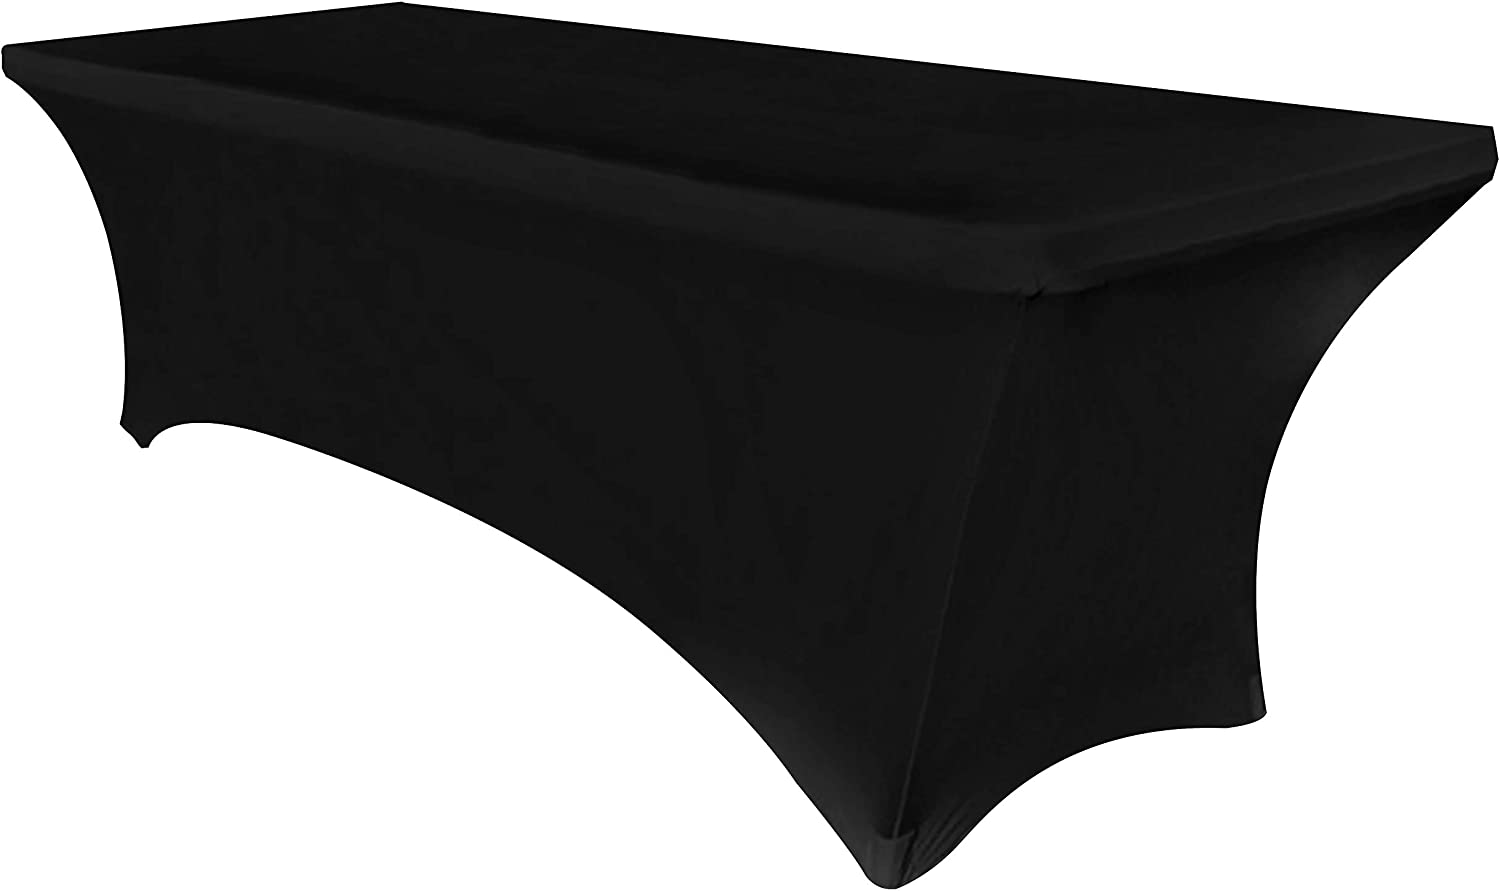 Obstal 6ft Stretch Spandex Table Cover for Standard Folding Tables - Universal Rectangular Fitted Tablecloth Protector for Wedding, Banquet and Party (Black, 72 Length x 30 Width x 30 Height Inches)